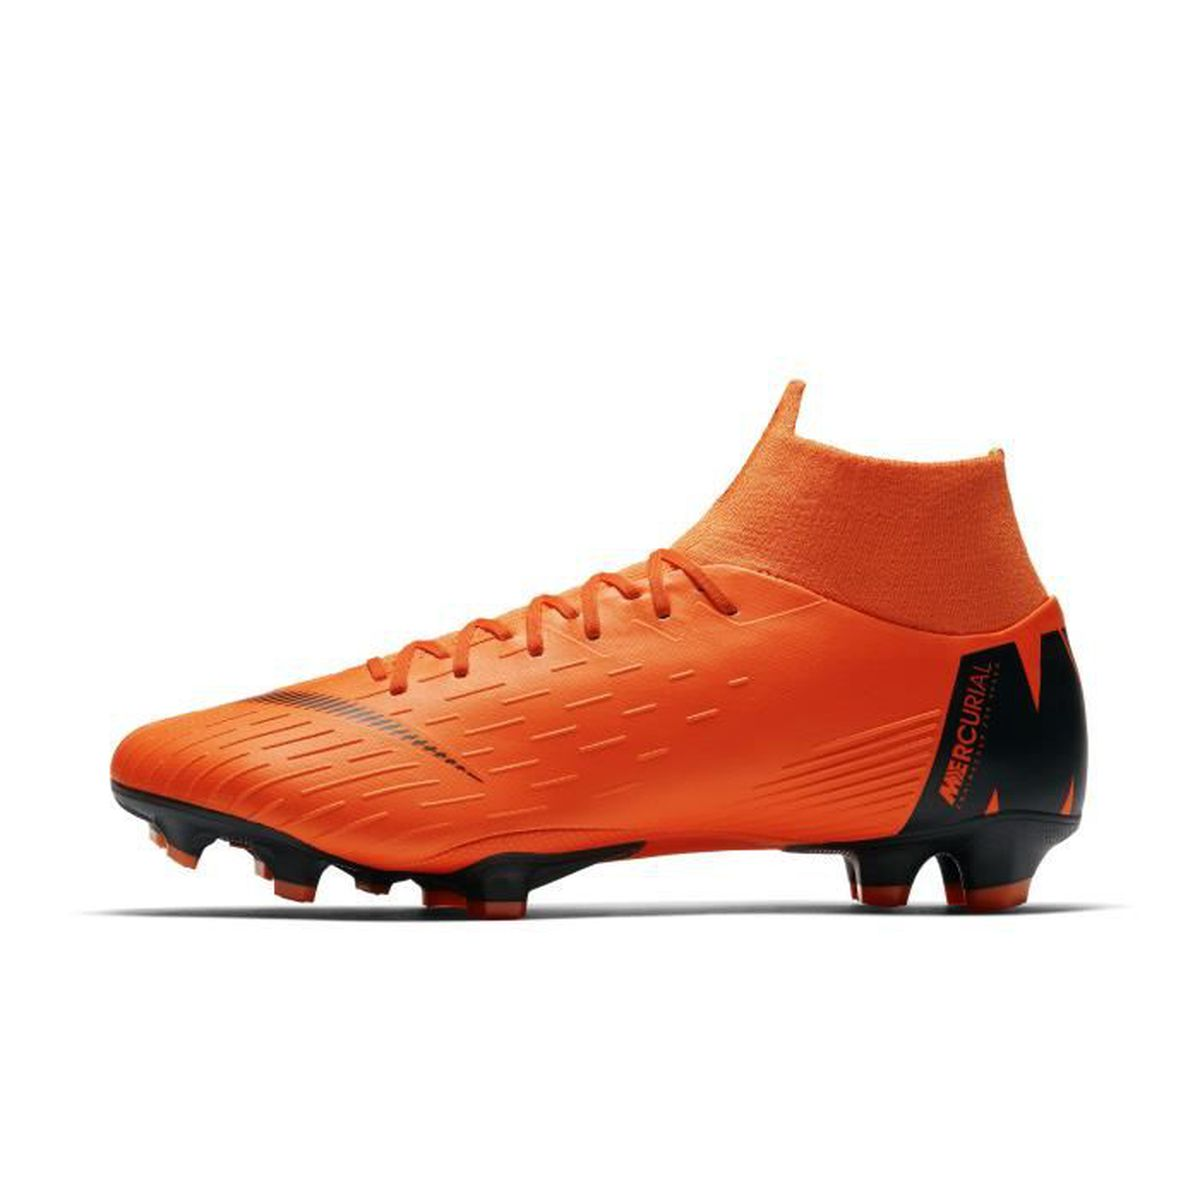 online store d8276 184ad CHAUSSURES DE FOOTBALL Nike Mercurial Superfly VI Pro FG, Sol ferme, Adul